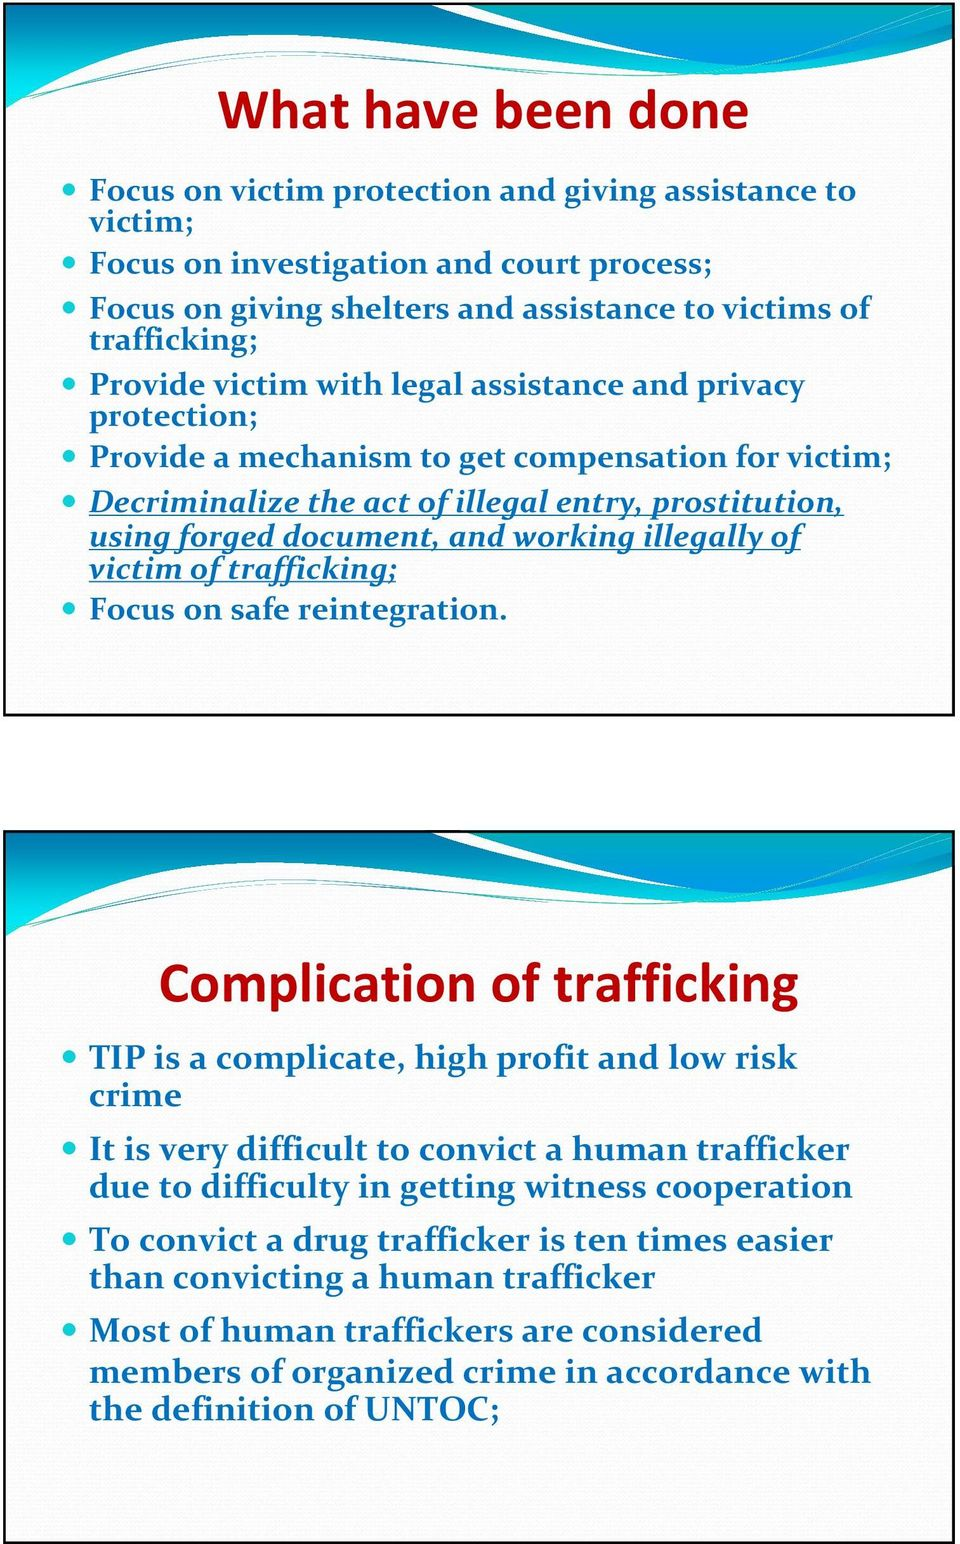 illegally of victim of trafficking; Focus on safe reintegration.